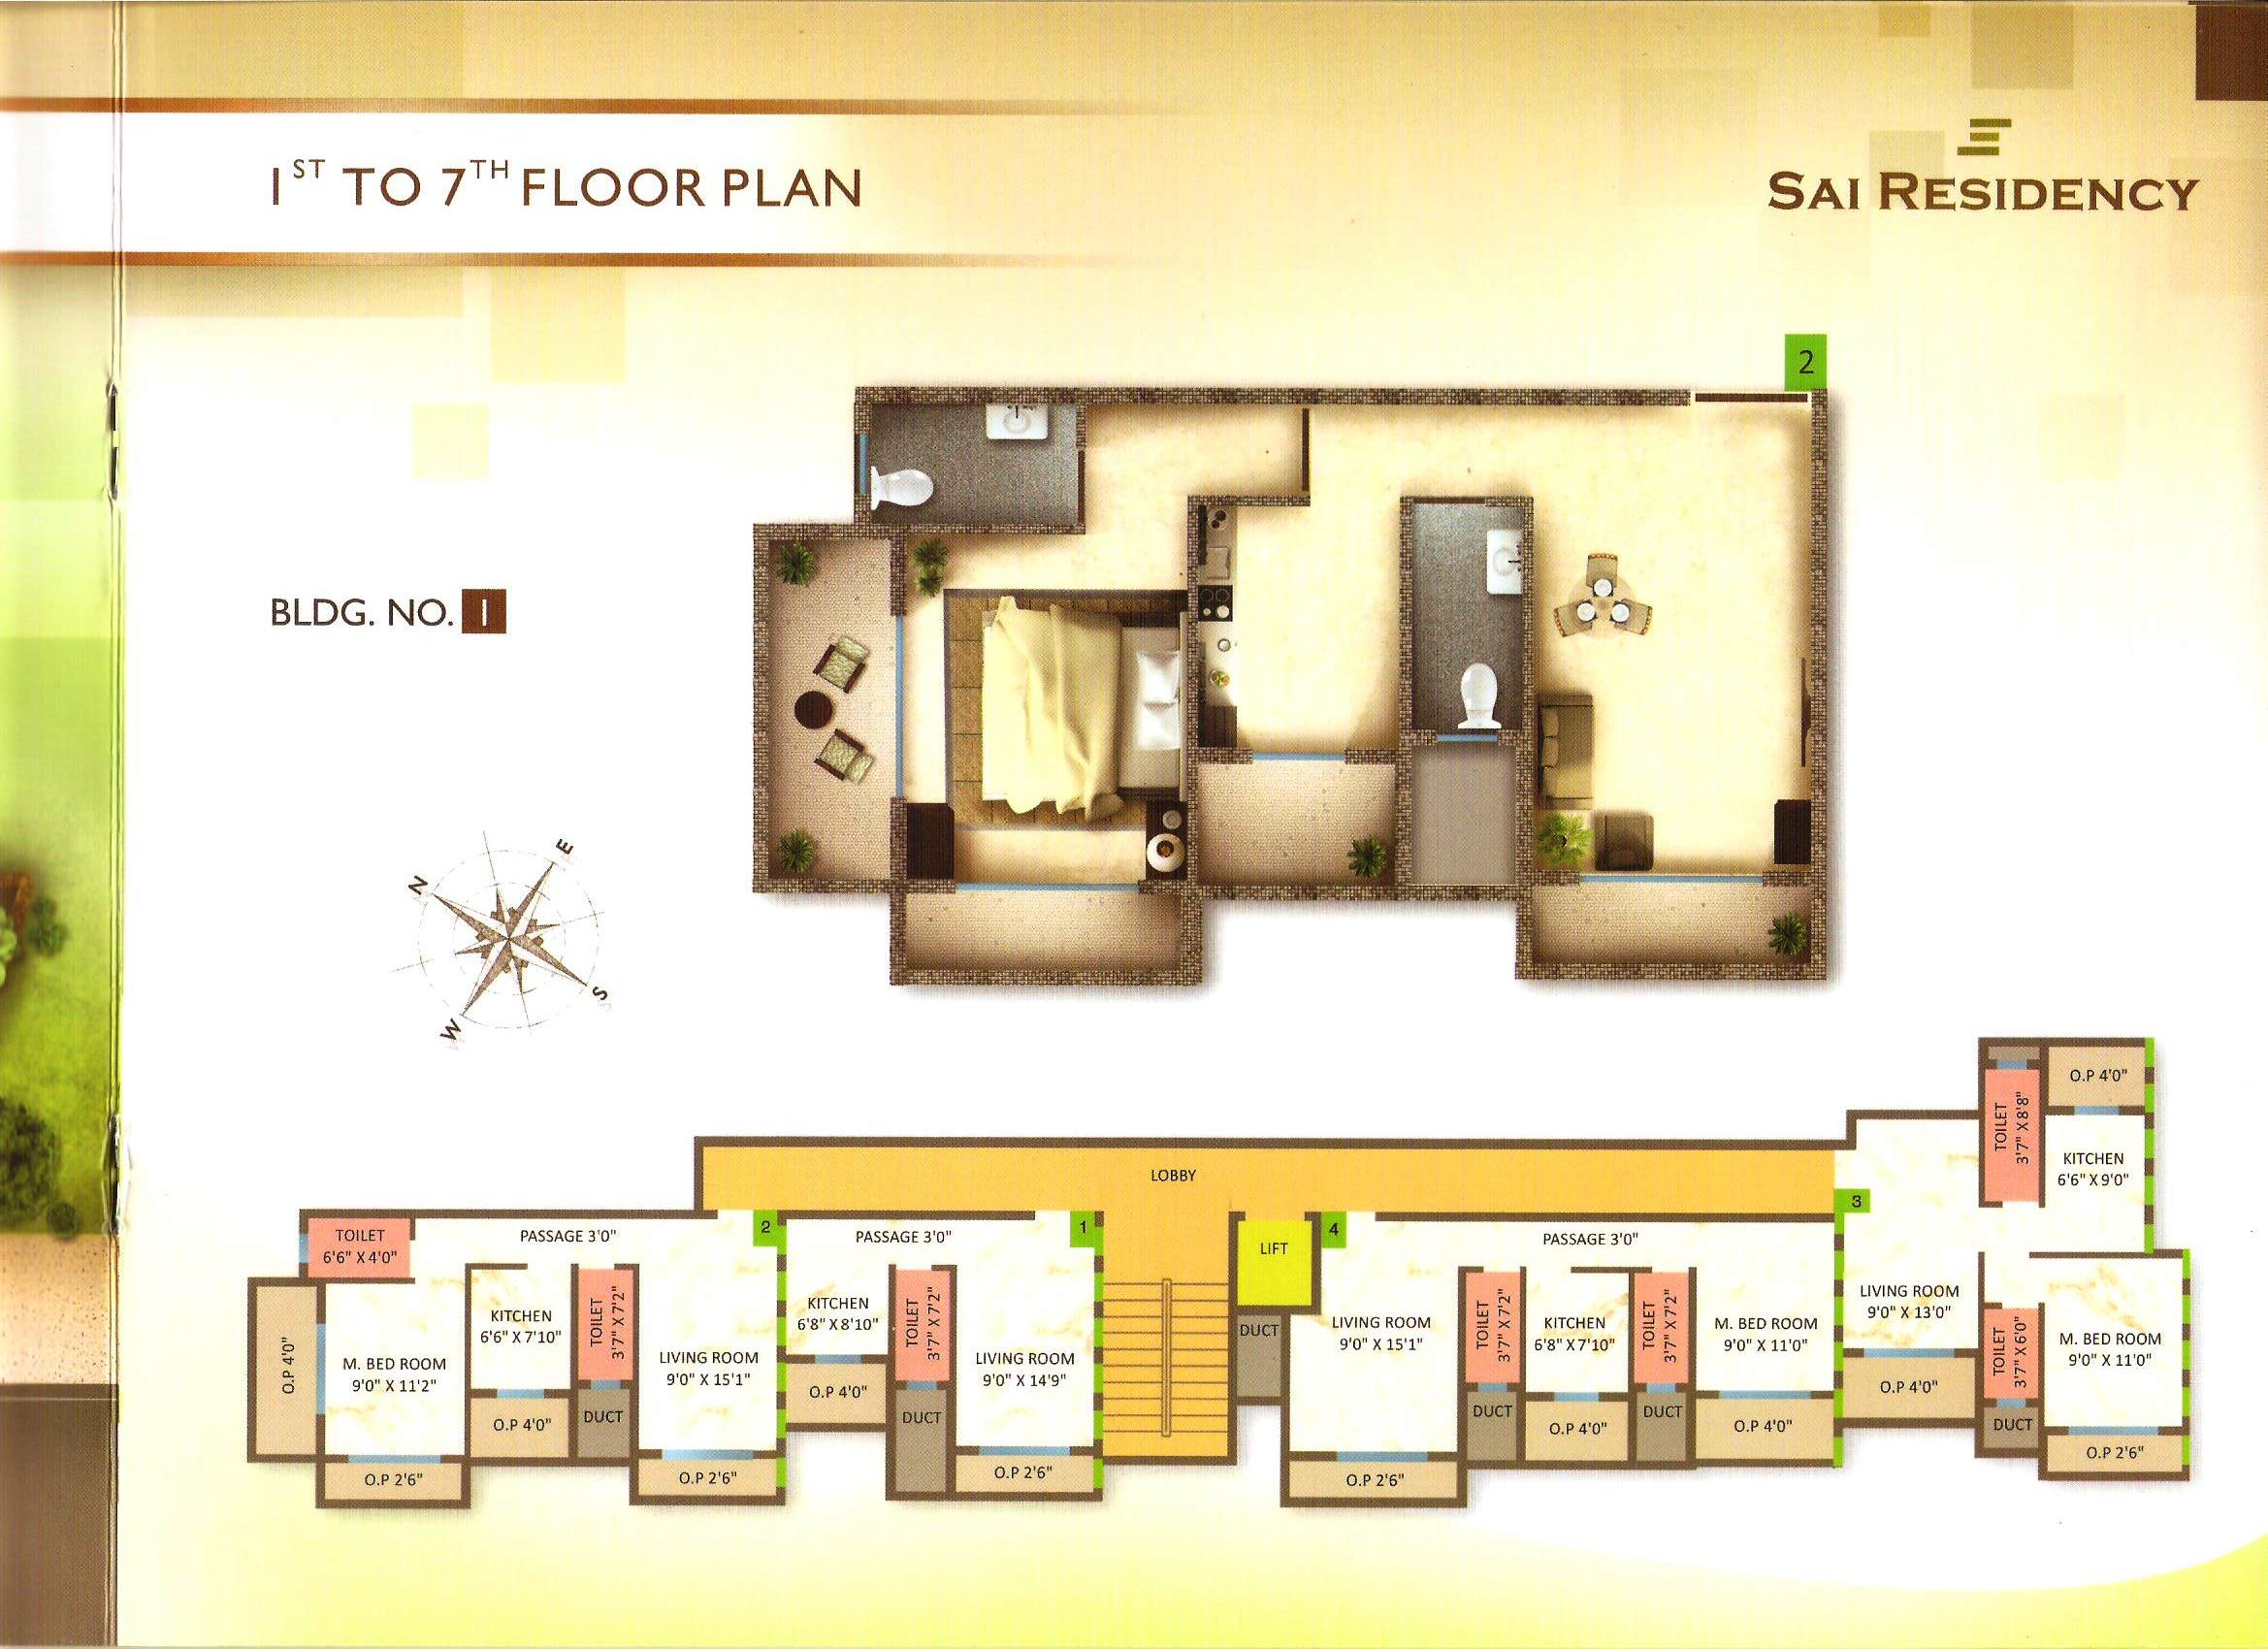 Residential Multistorey Apartment for Sale in Survey No 19/2,Pale , Ambernath-West, Mumbai